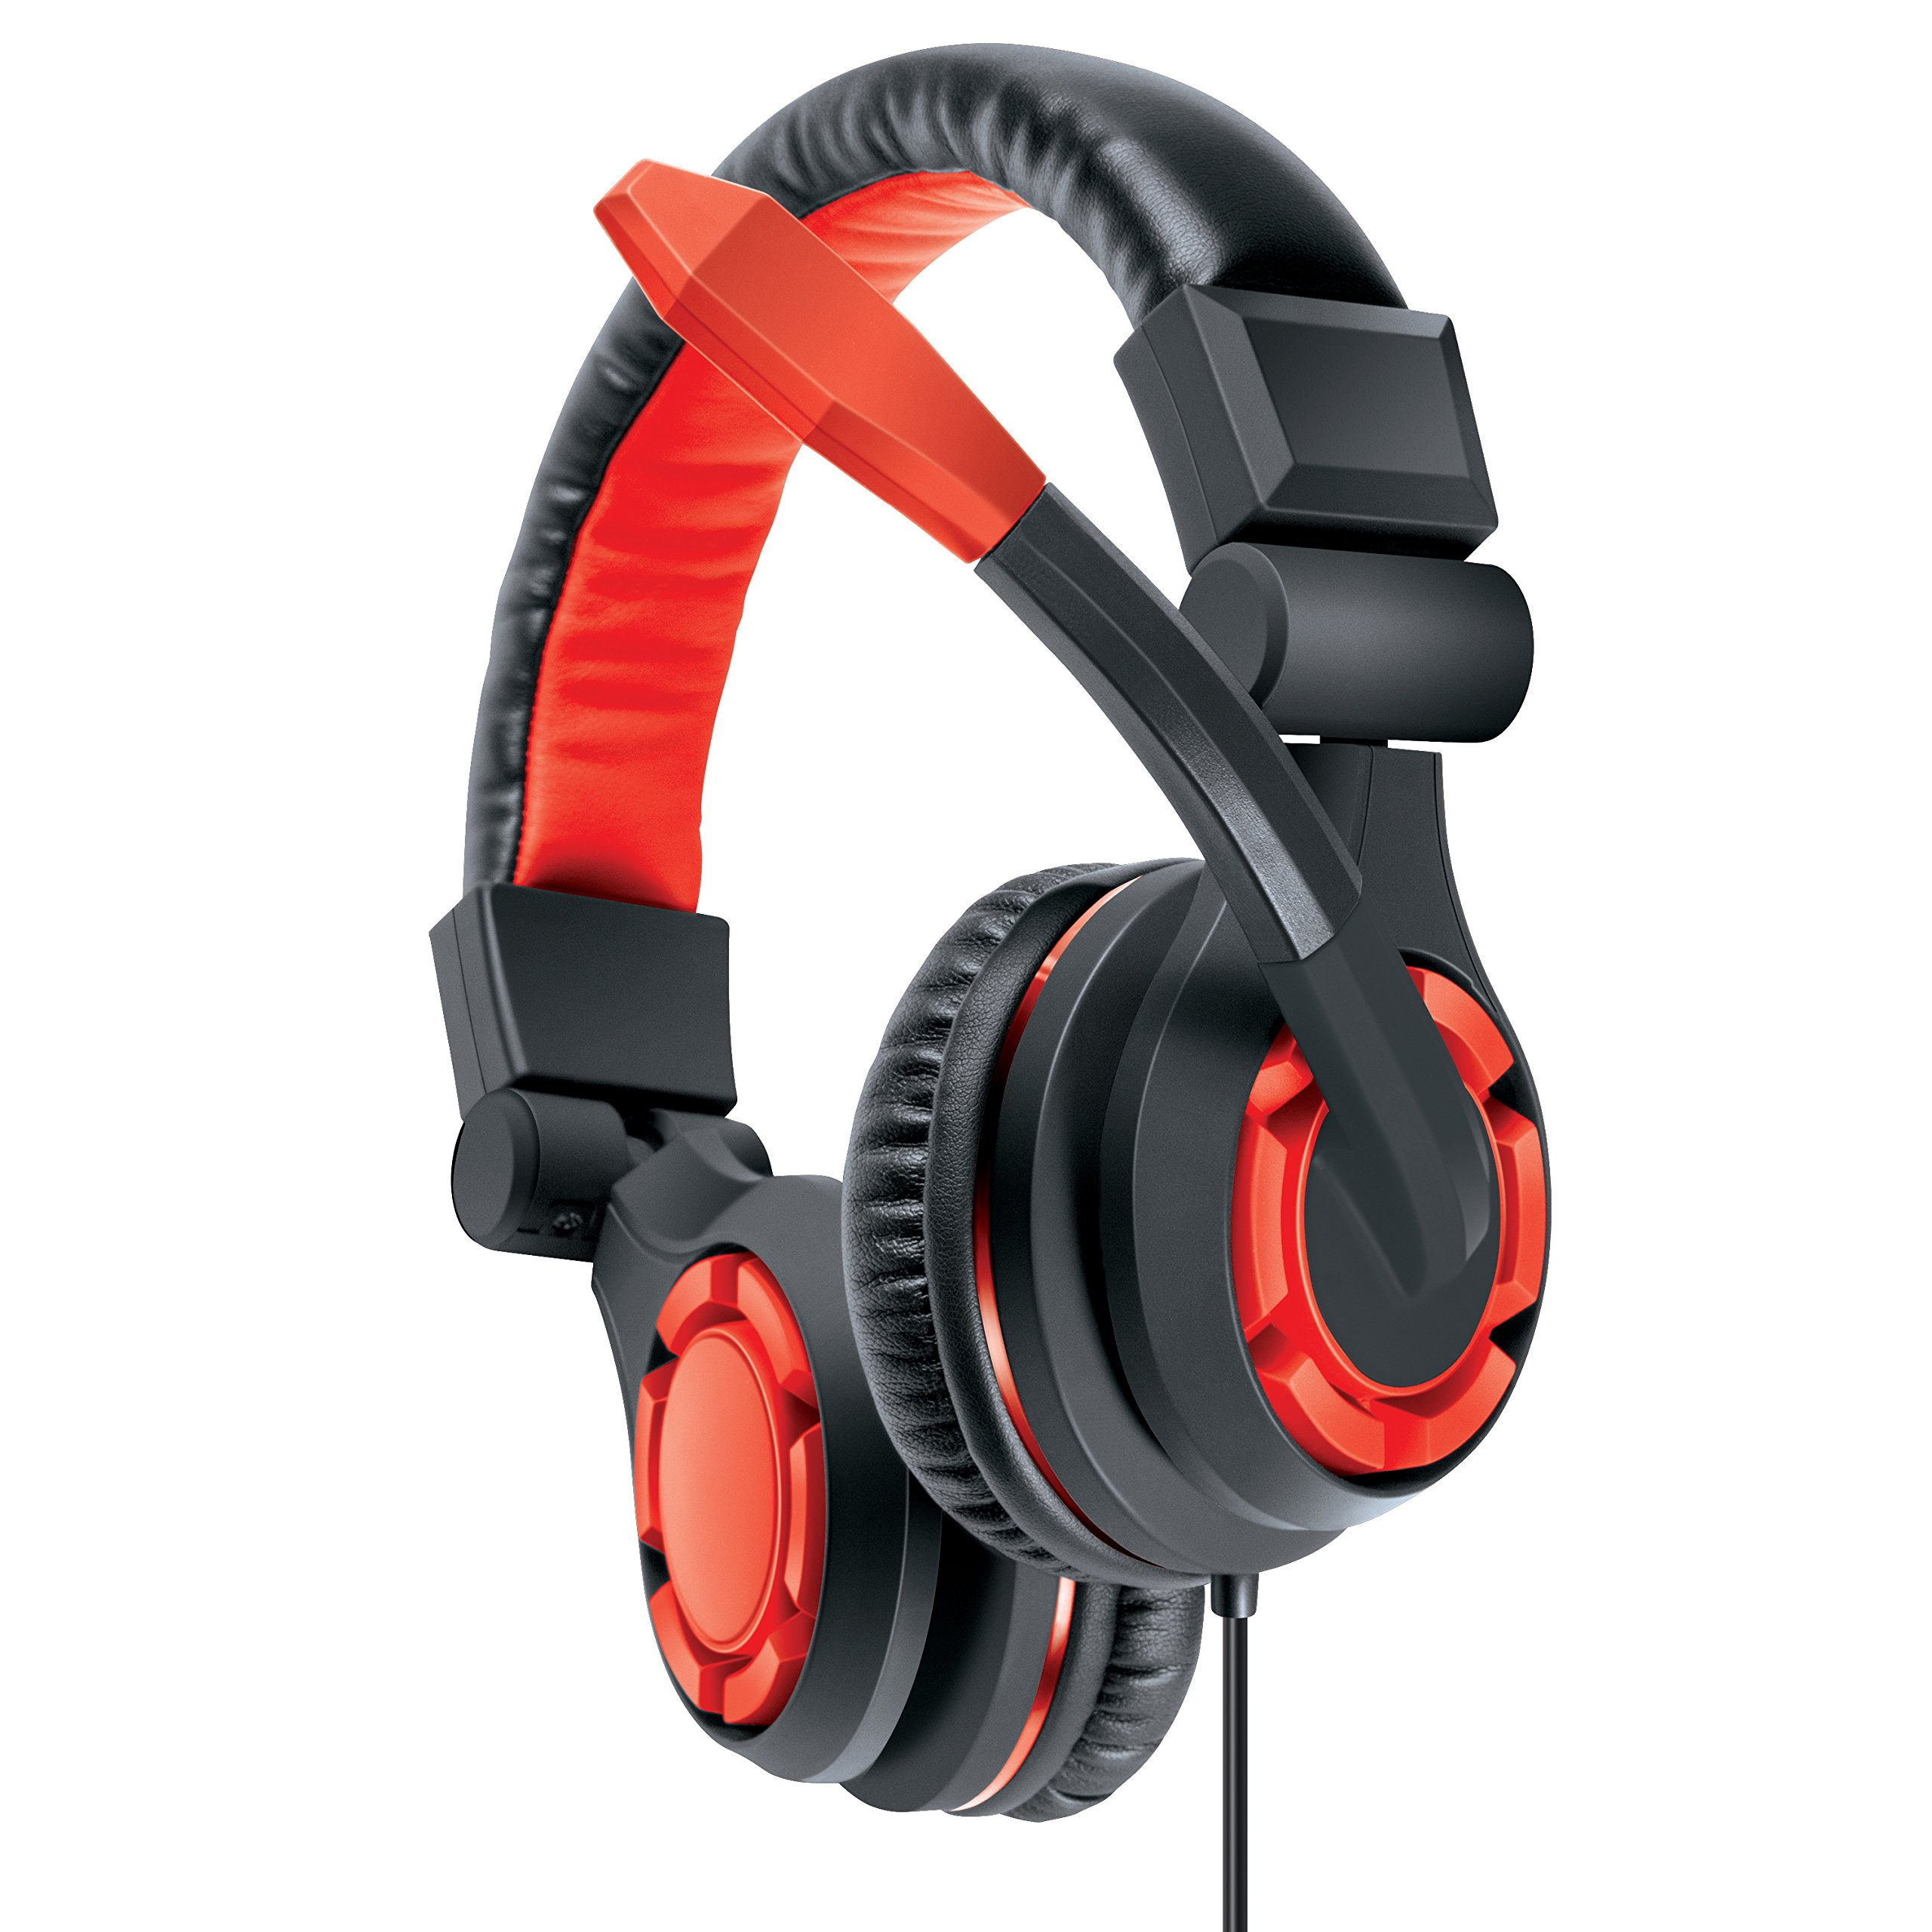 dreamGEAR: GRX 670 Universal Wired Gaming Headset - Amplified with Separate inline Controls for both Chat and Game Sounds for All Current Gaming Consoles, PC, and Smartphones by dreamGEAR